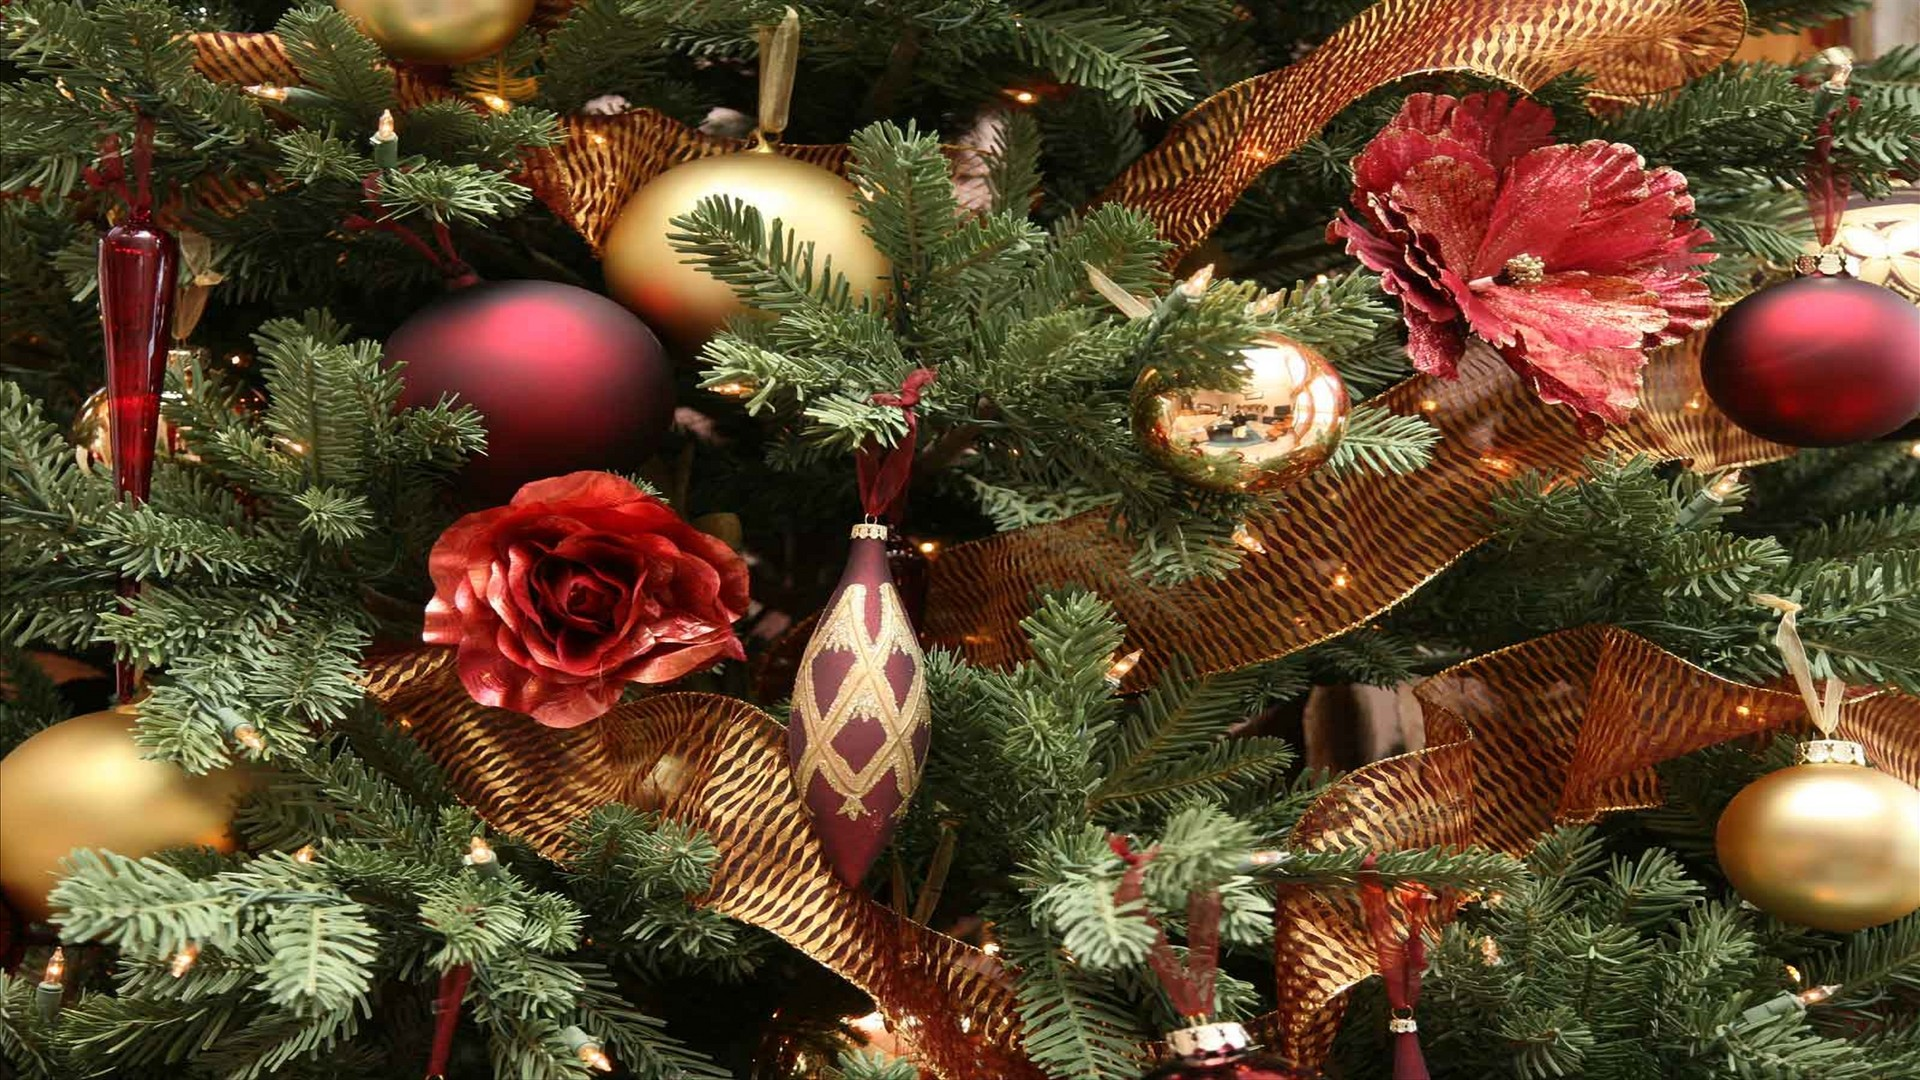 Hd Christmas Wallpaper   The Momment